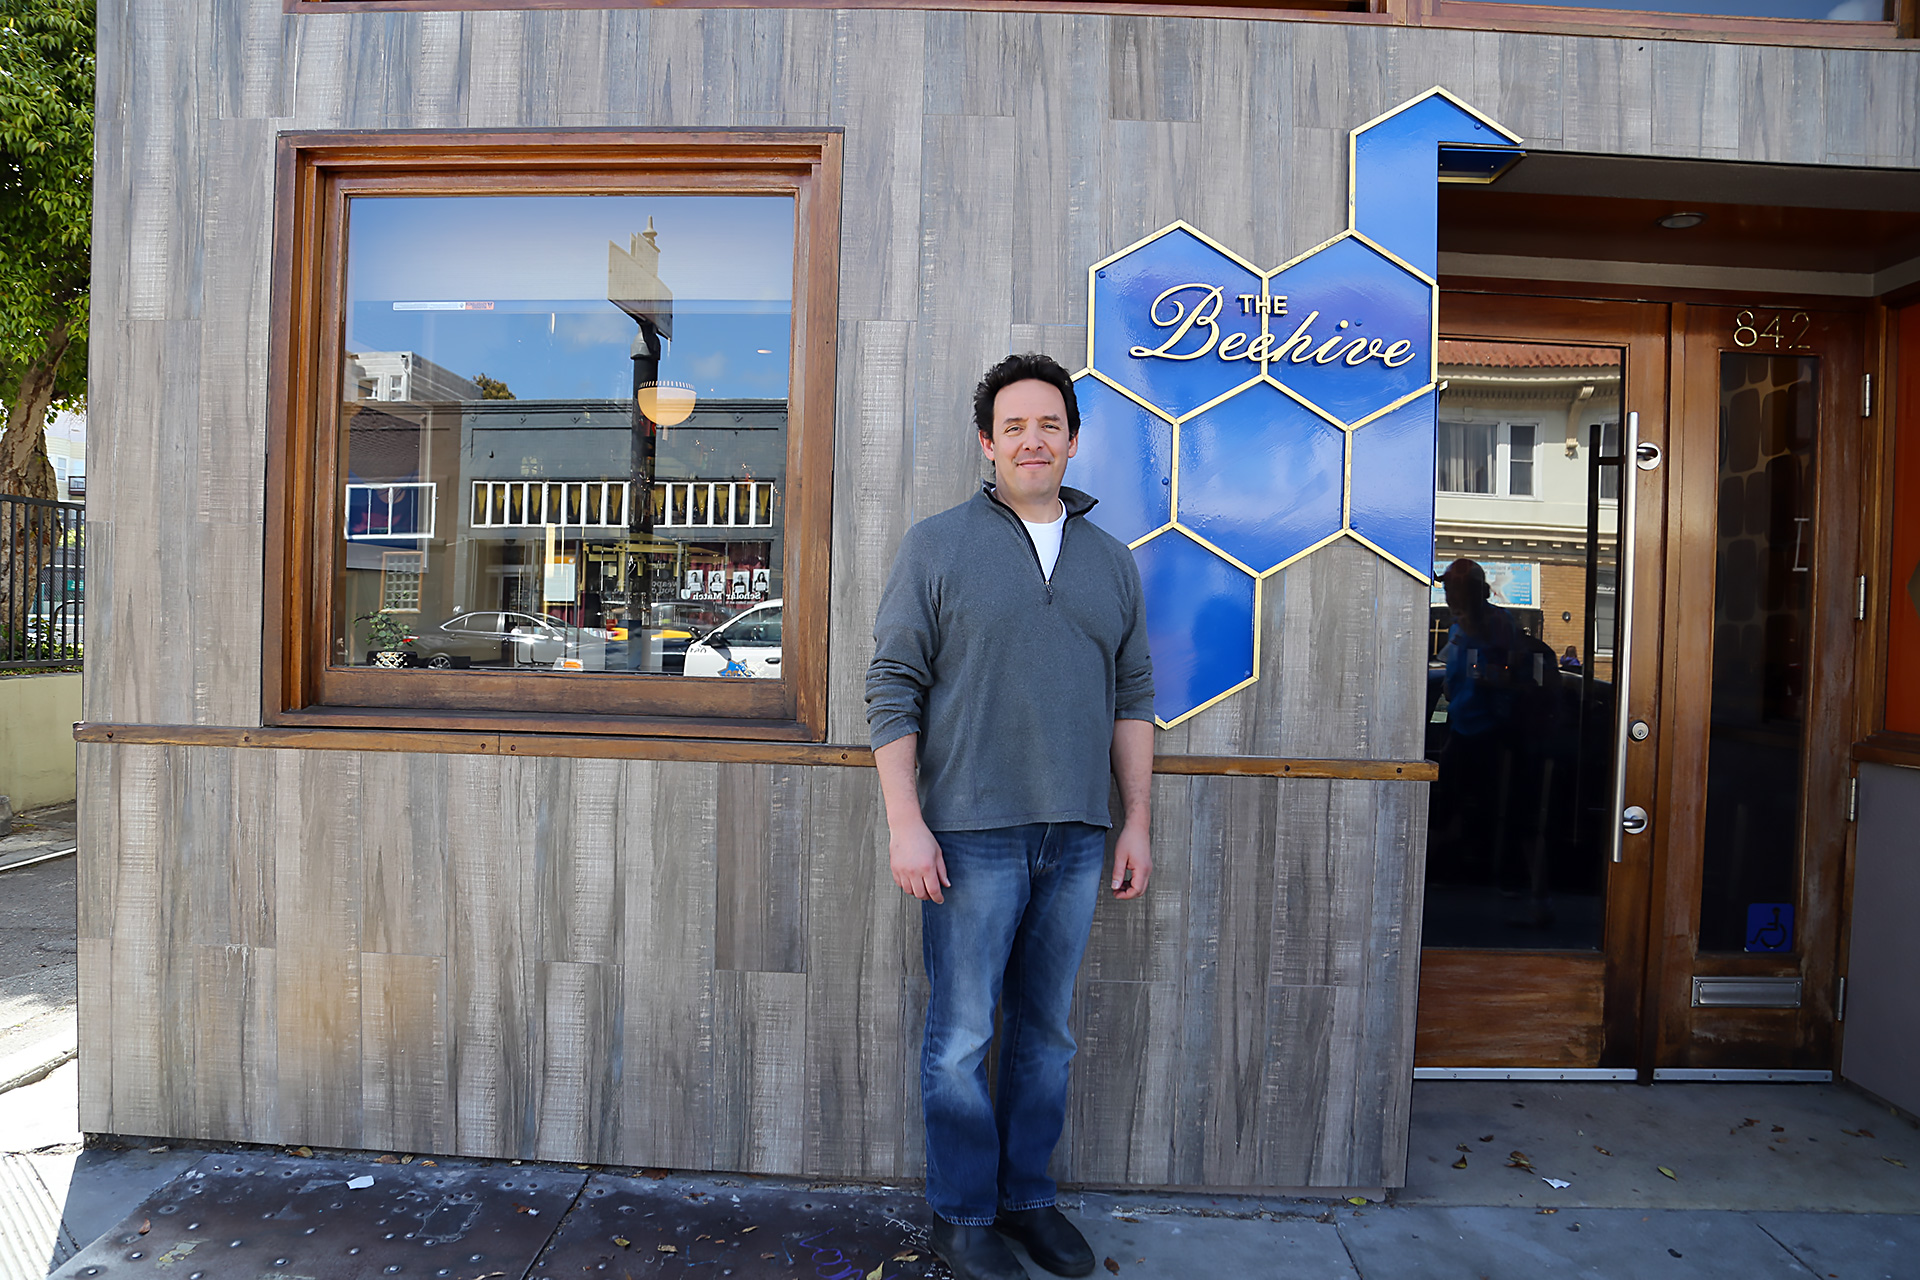 Partner/Chef Phil West in front of The Beehive